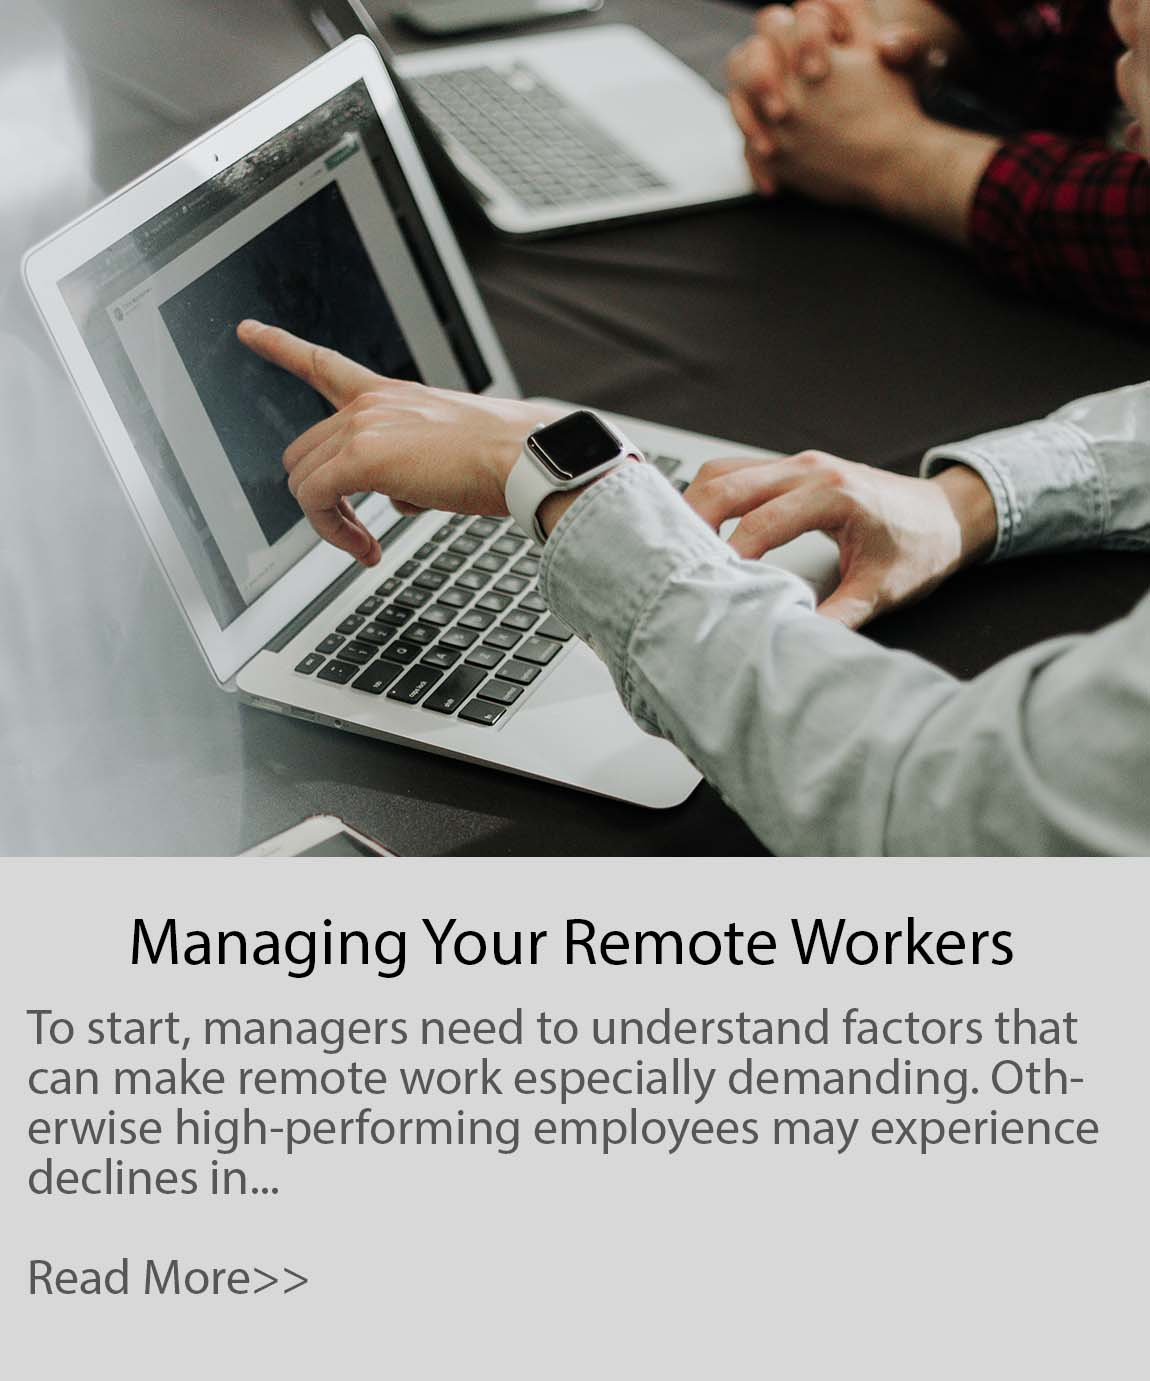 managing your remote workers during pandemic